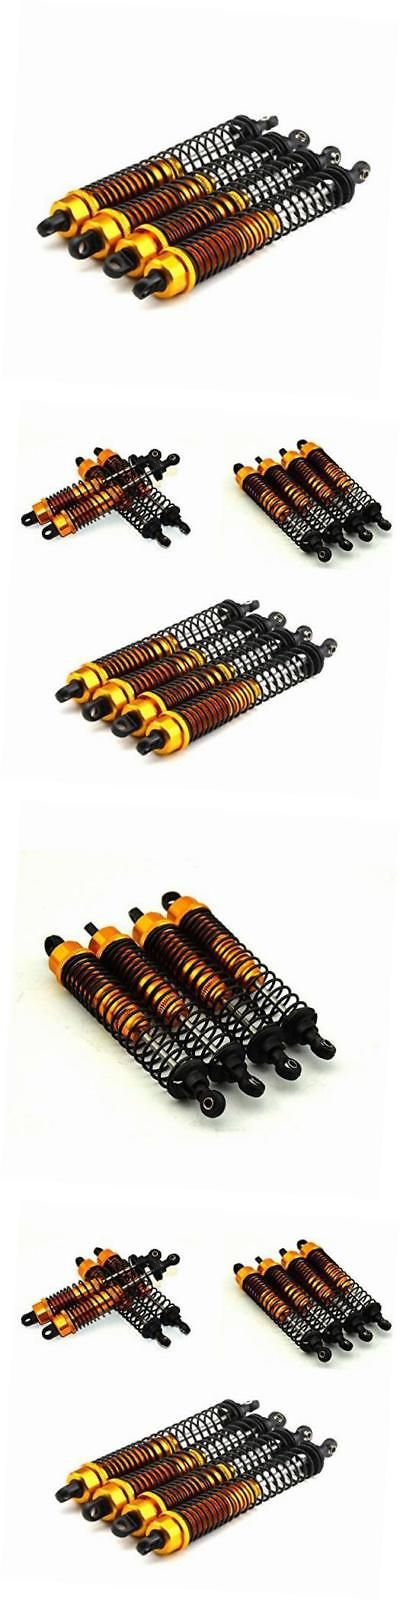 Radio Control 51029: 130Mm Gold Alloy Dampers (4) - Oil Shocks For 1:10 Rc Crawlers Suit Axial -> BUY IT NOW ONLY: $36.13 on eBay!